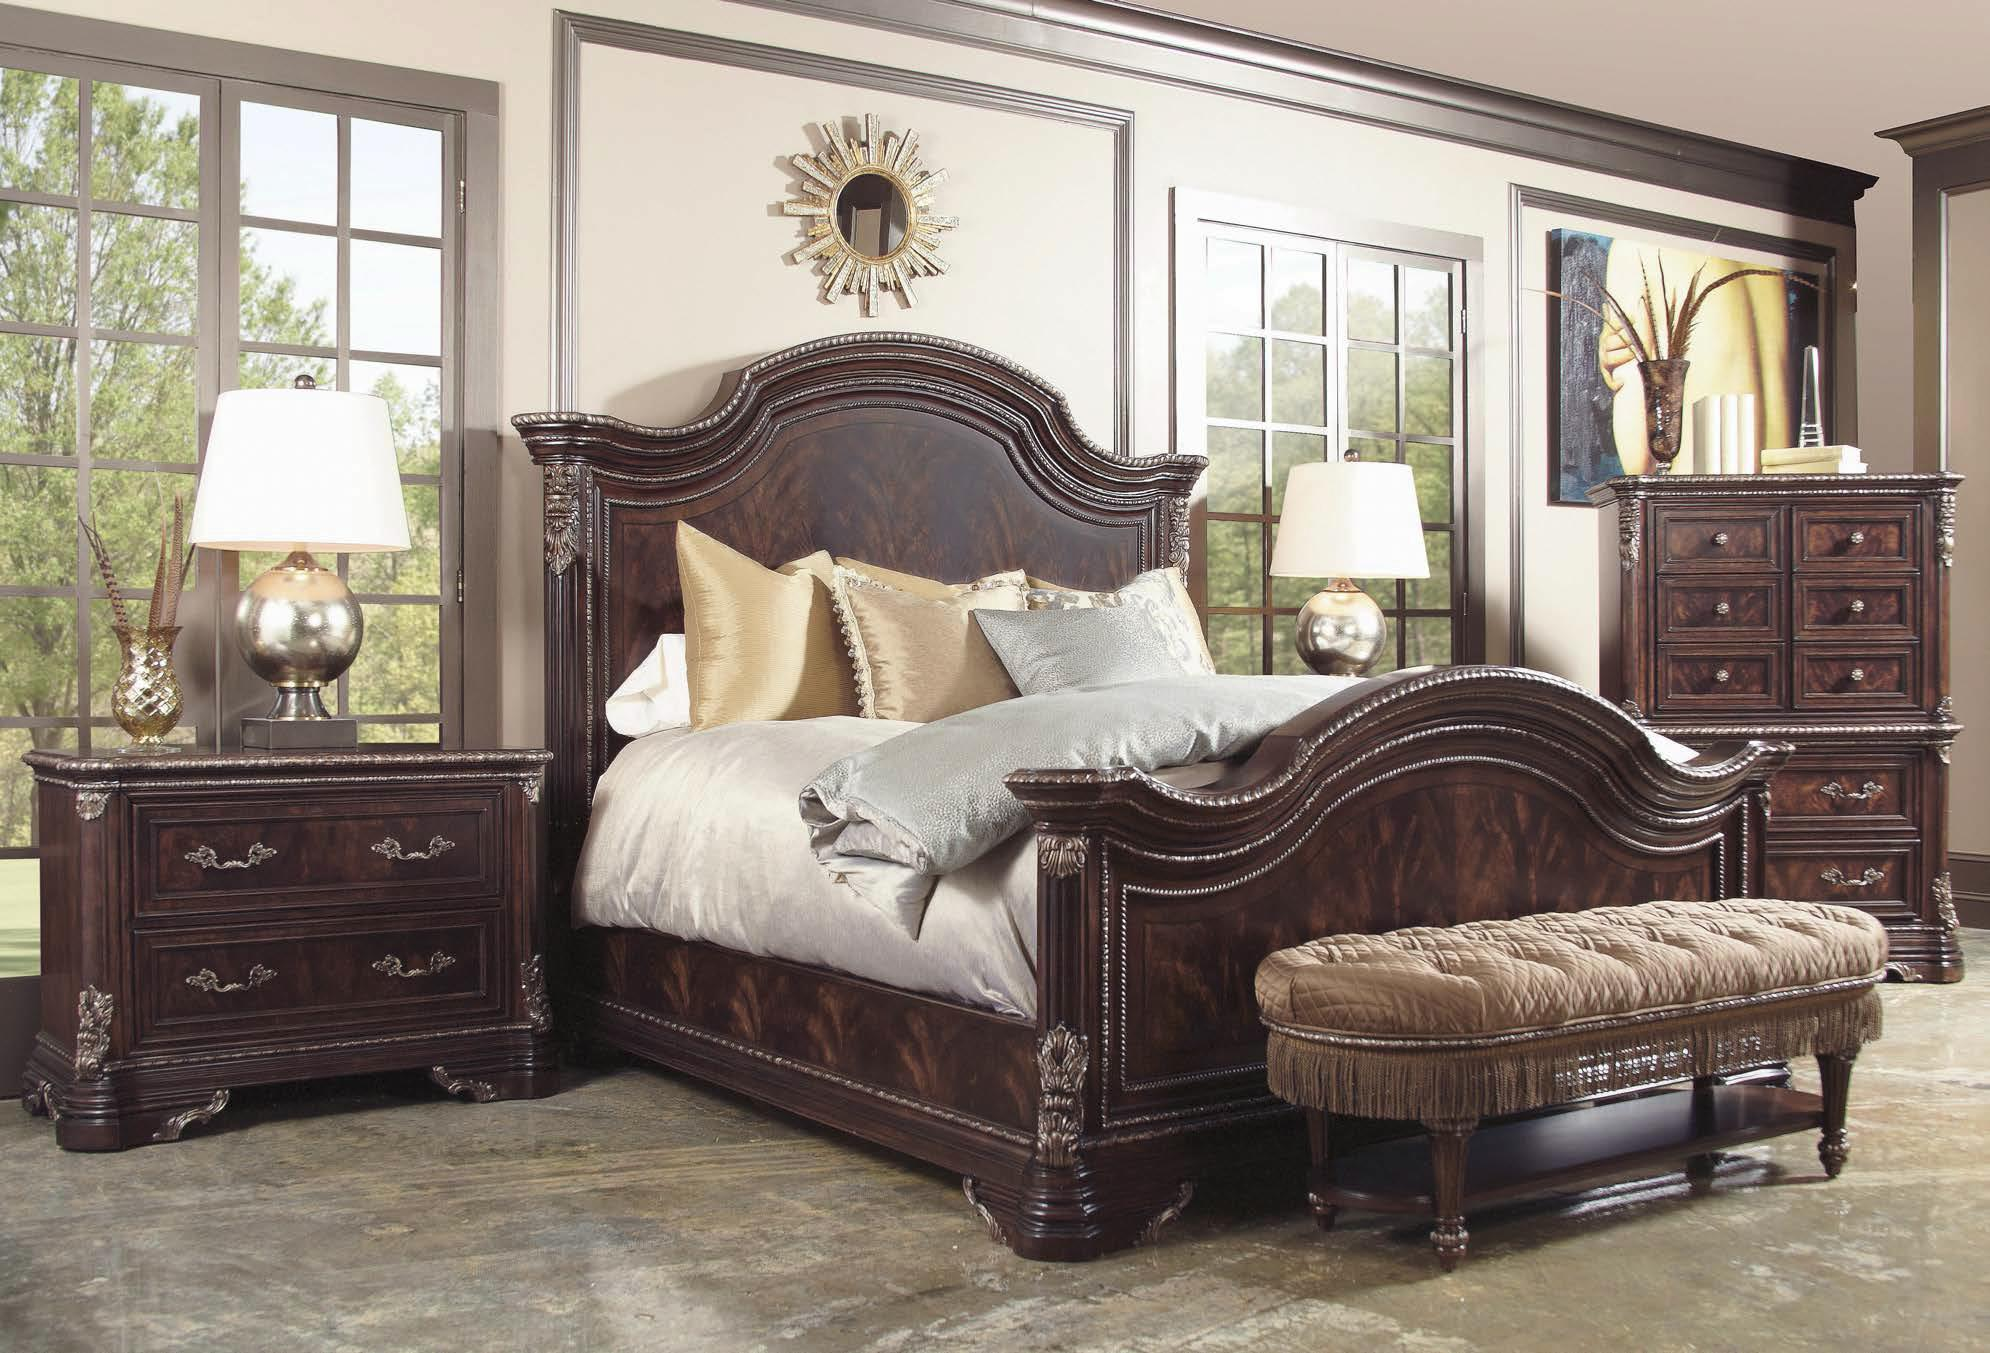 a r t furniture inc gables king bedroom group olinde s 11074 | collections 2fart furniture inc 2fgables 245000 1707 bhf b1